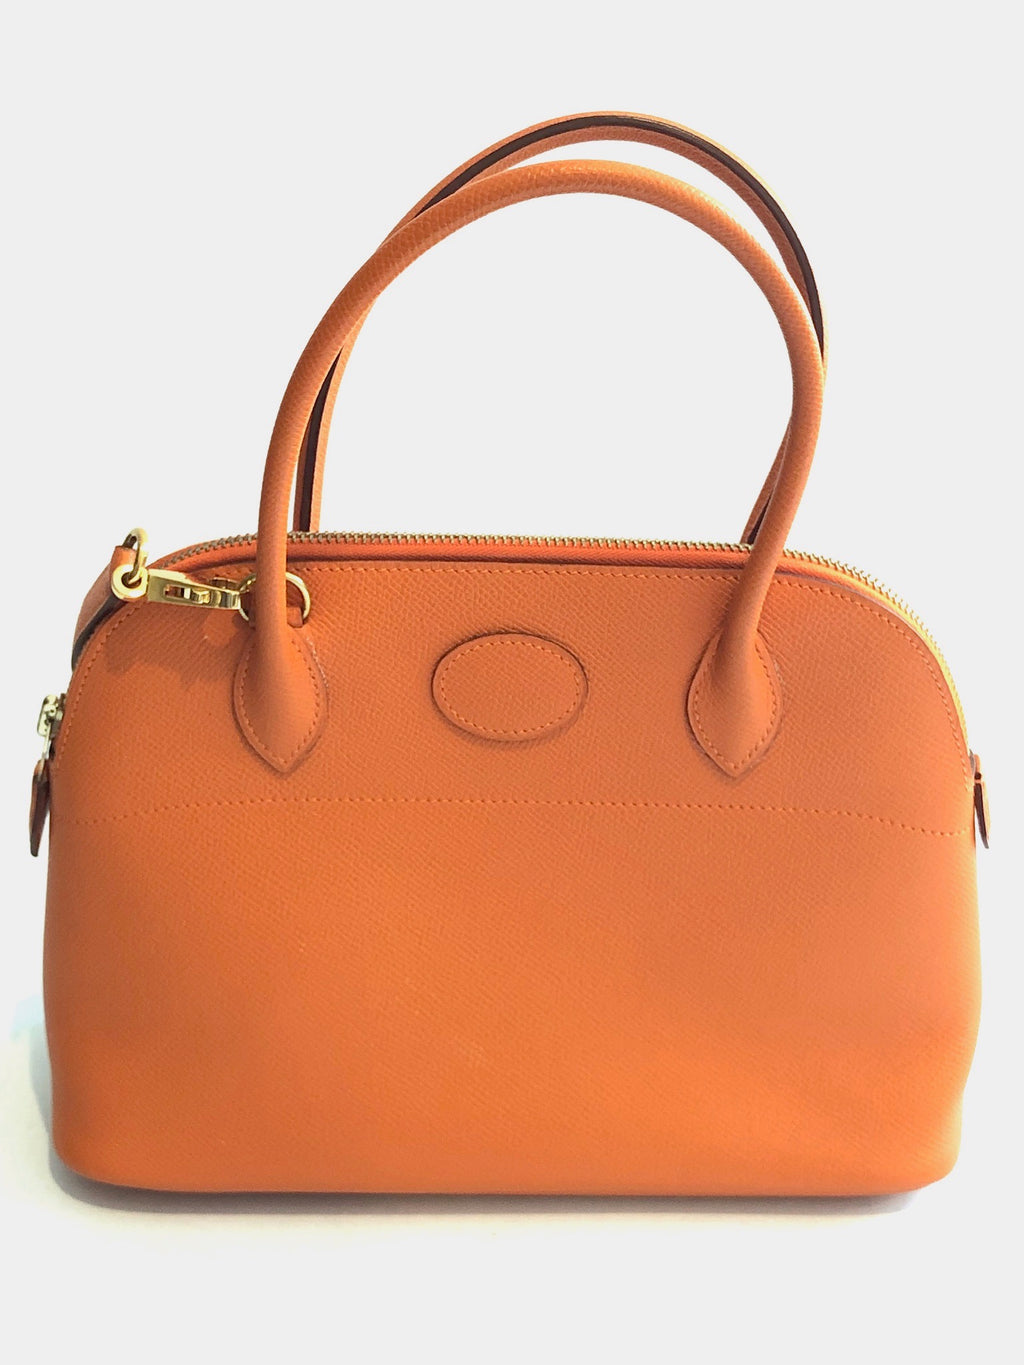 Hermes Orange Leather Bolide 27cm Bag